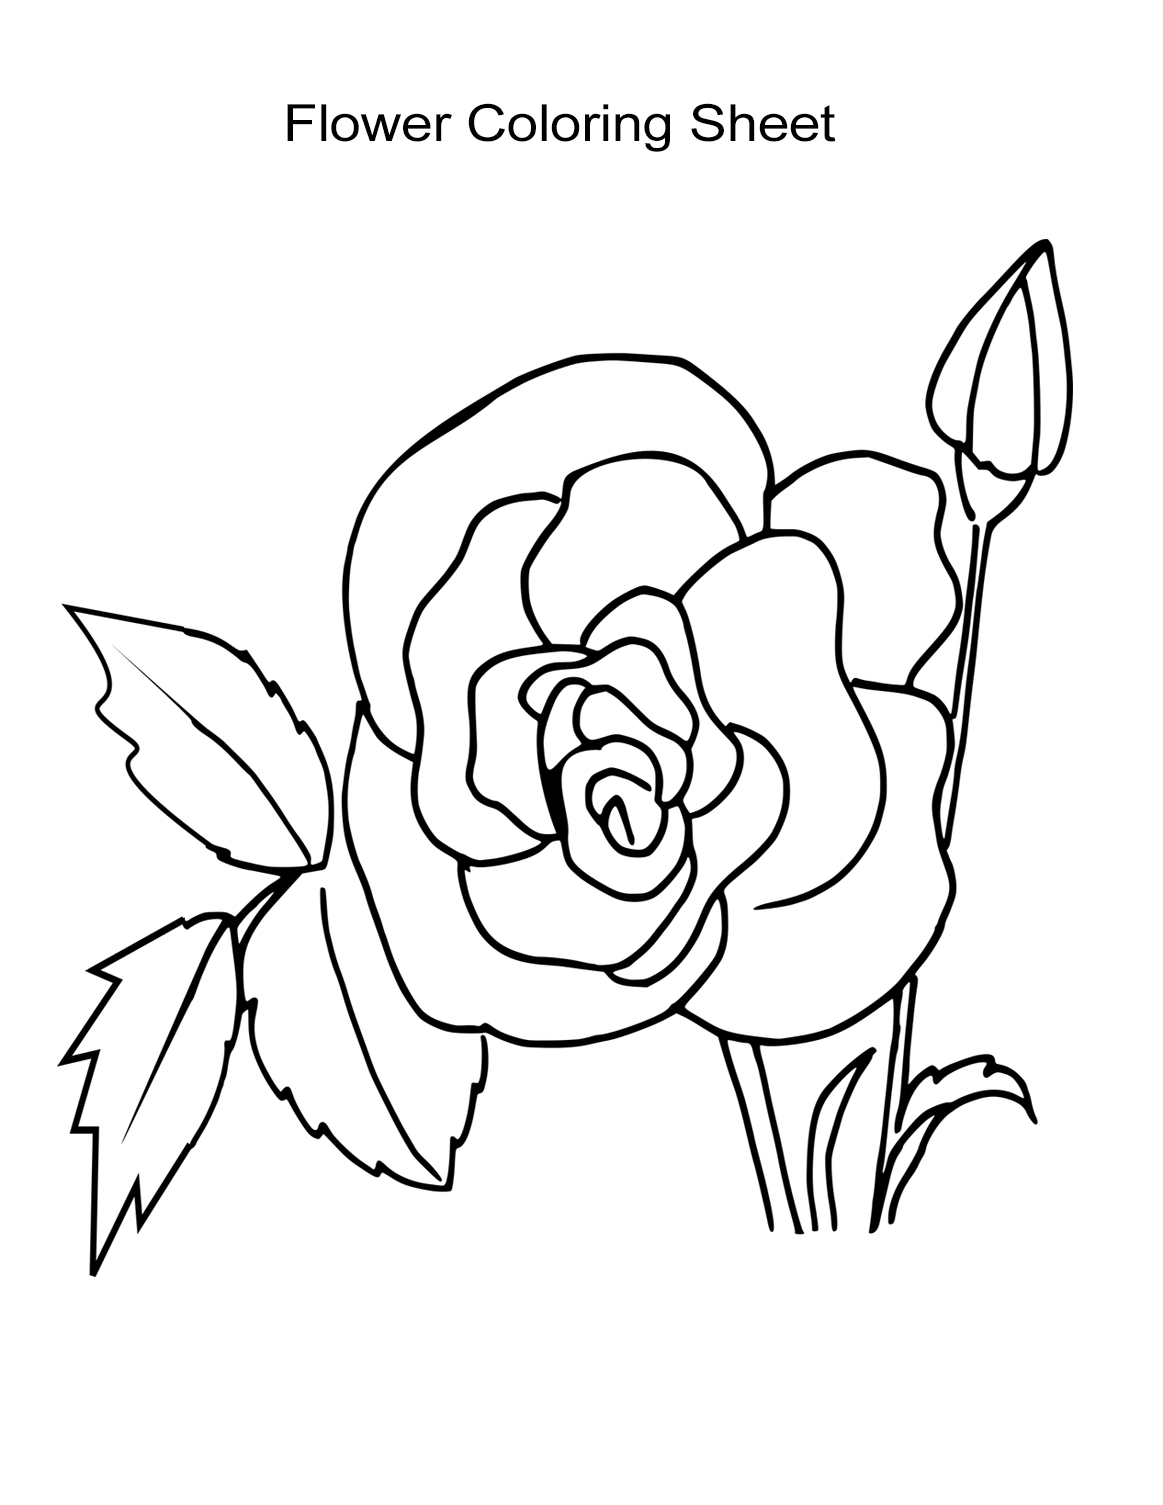 flower coloring pages for girls 10 flower coloring sheets for girls and boys all esl flower coloring girls for pages